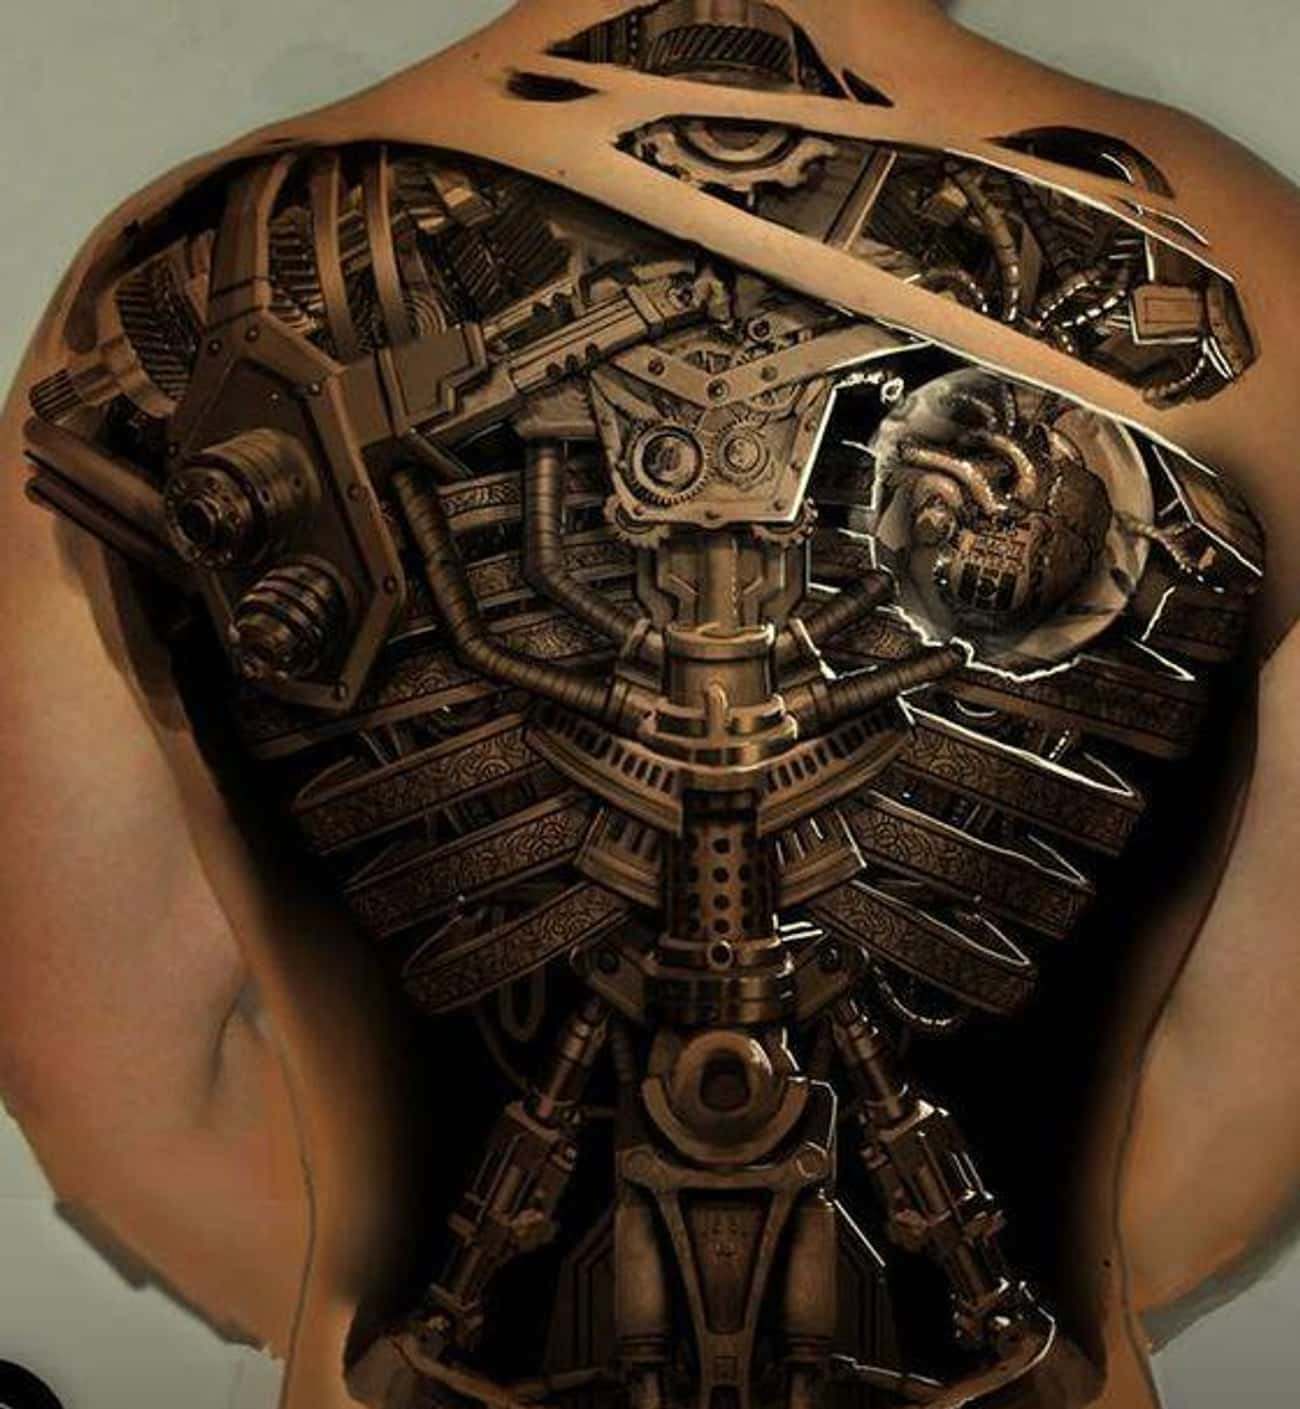 Man or Machine? You Decide is listed (or ranked) 2 on the list 29 Hyperrealistic Tattoos That Look Like Photos Printed on Skin